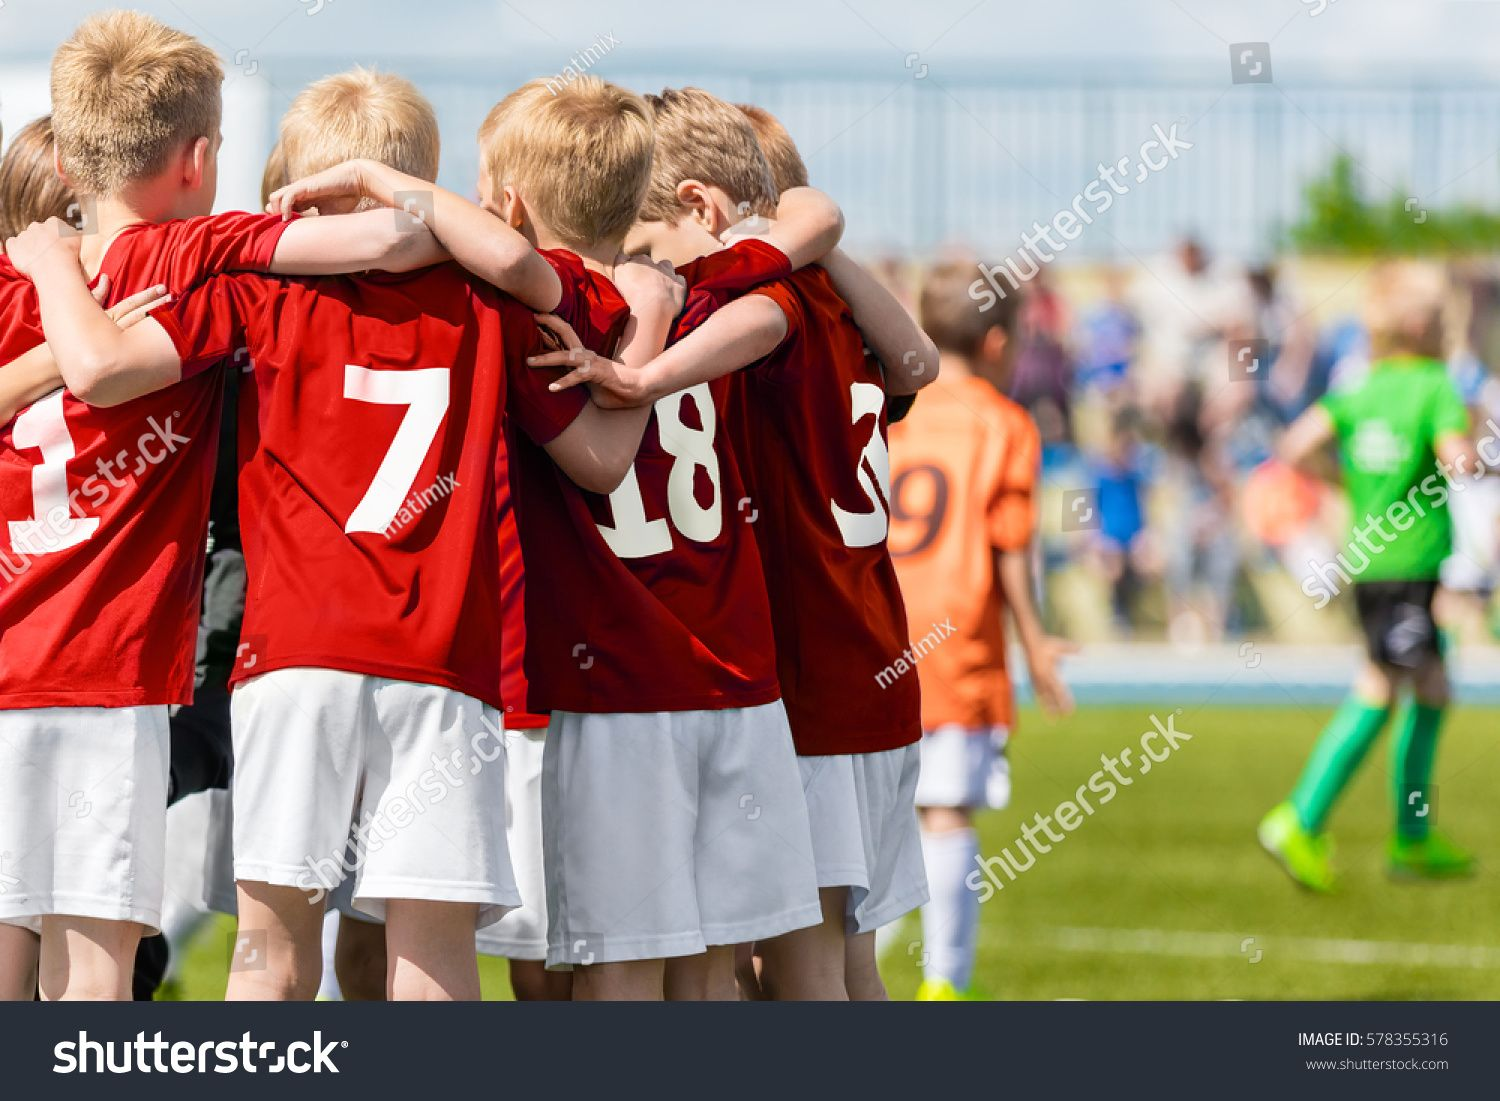 Boys Soccer Team Children Football Academy Kids Soccer Players In Red Shirts Standing Together On The Pitch Youth Soccer Kids Soccer Soccer Boys Soccer Team